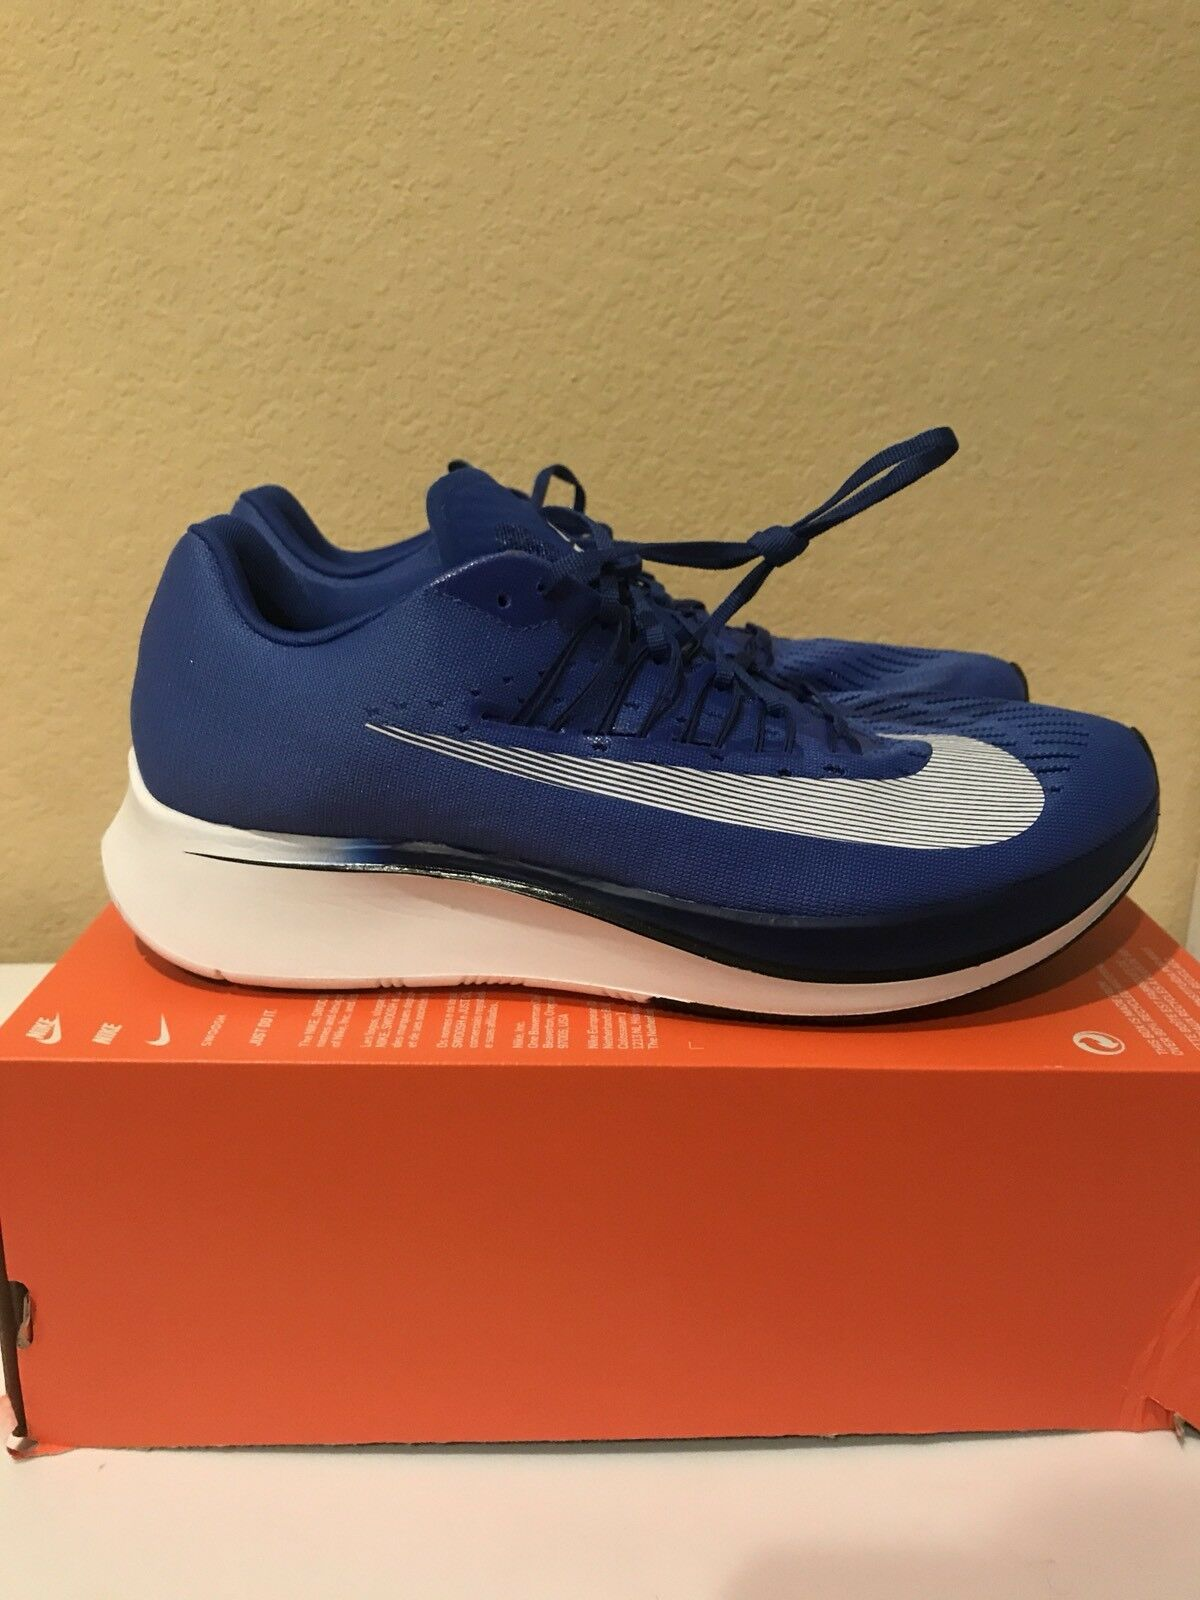 SALE NIKE ZOOM FLY Price reduction The latest discount shoes for men and women